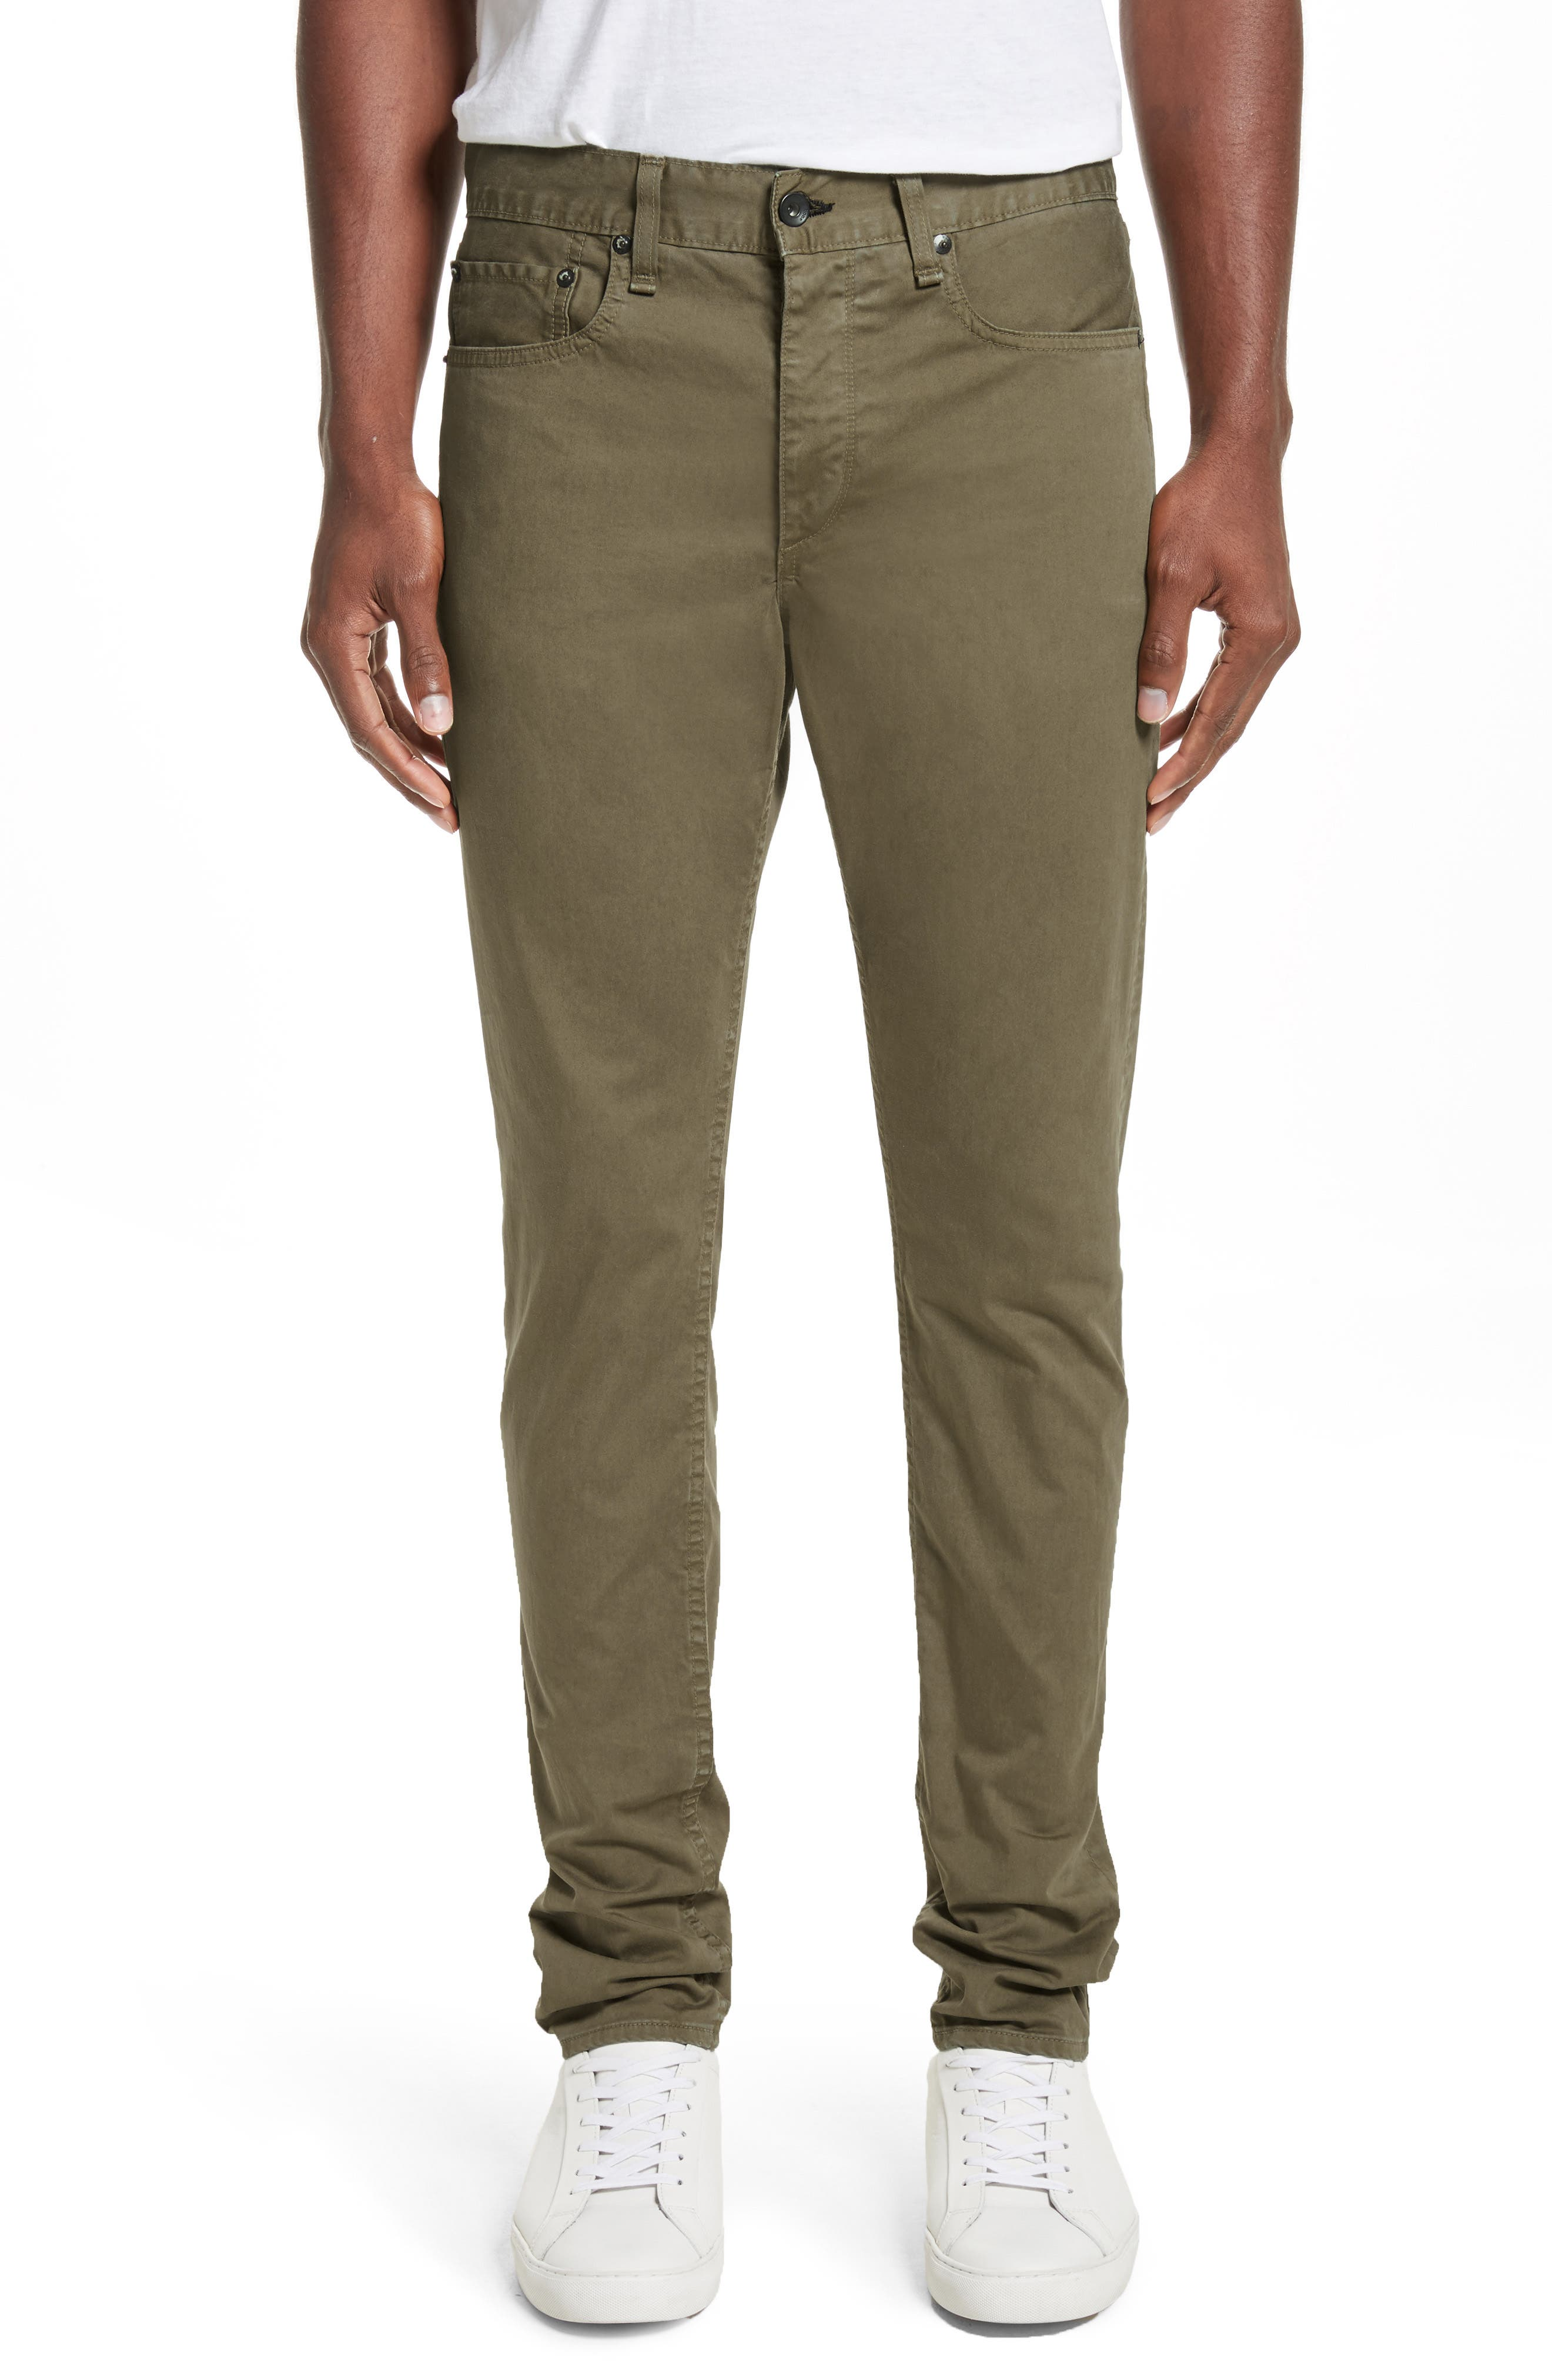 Alternate Image 1 Selected - rag & bone Fit 1 Twill Skinny Fit Pants